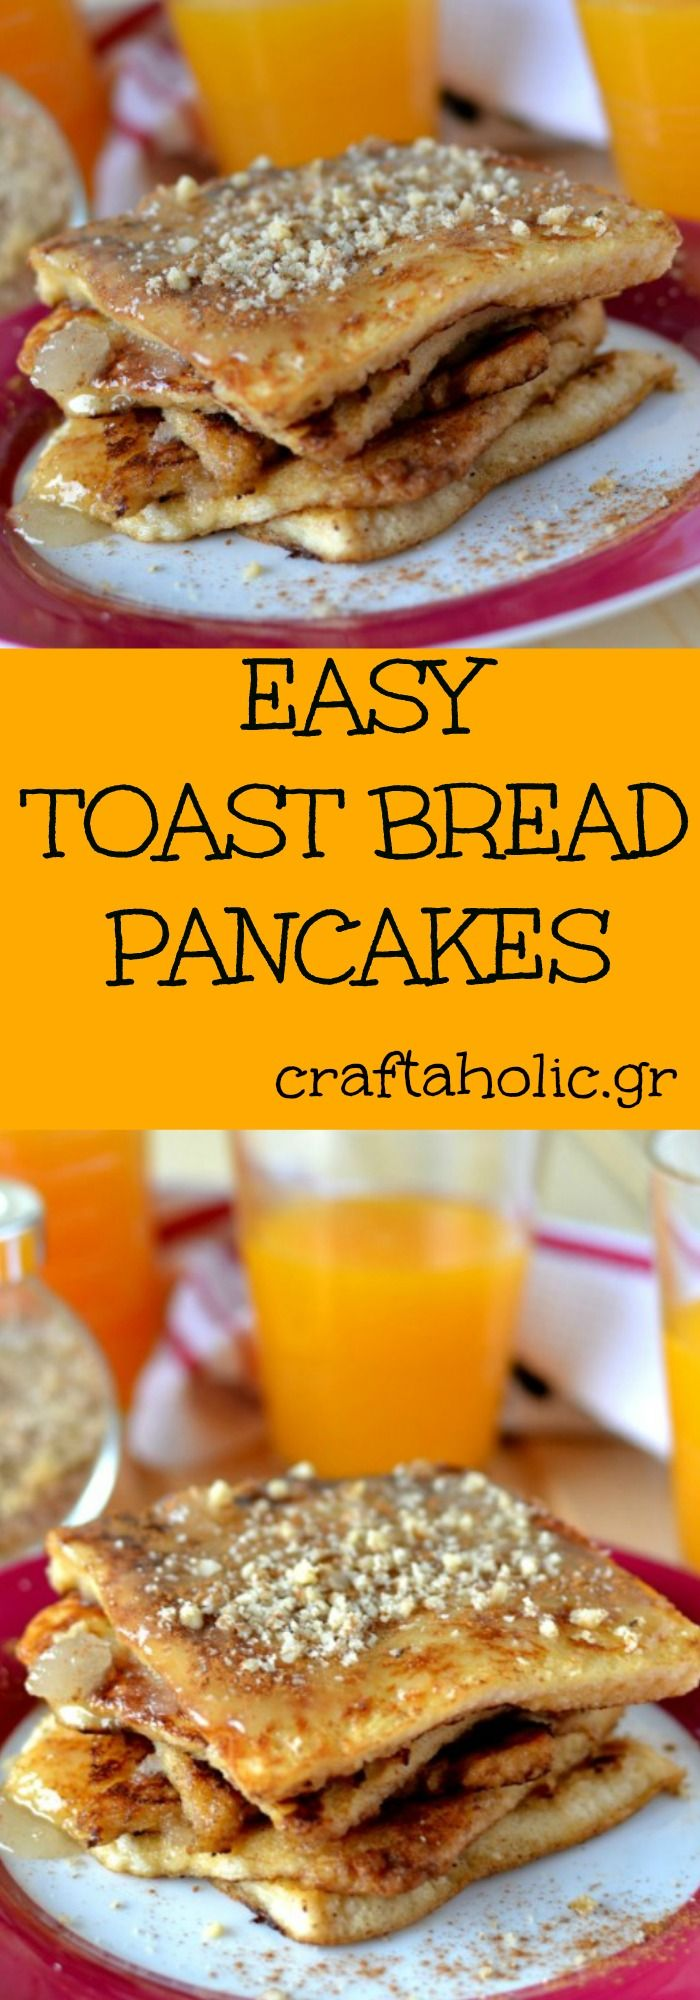 The easiest pancakes ever! Made from scratch of course! You only need toast bread, some milk and eggs and they are ready in just a few minutes. This is our favorite recipe for breakfast and brunch!